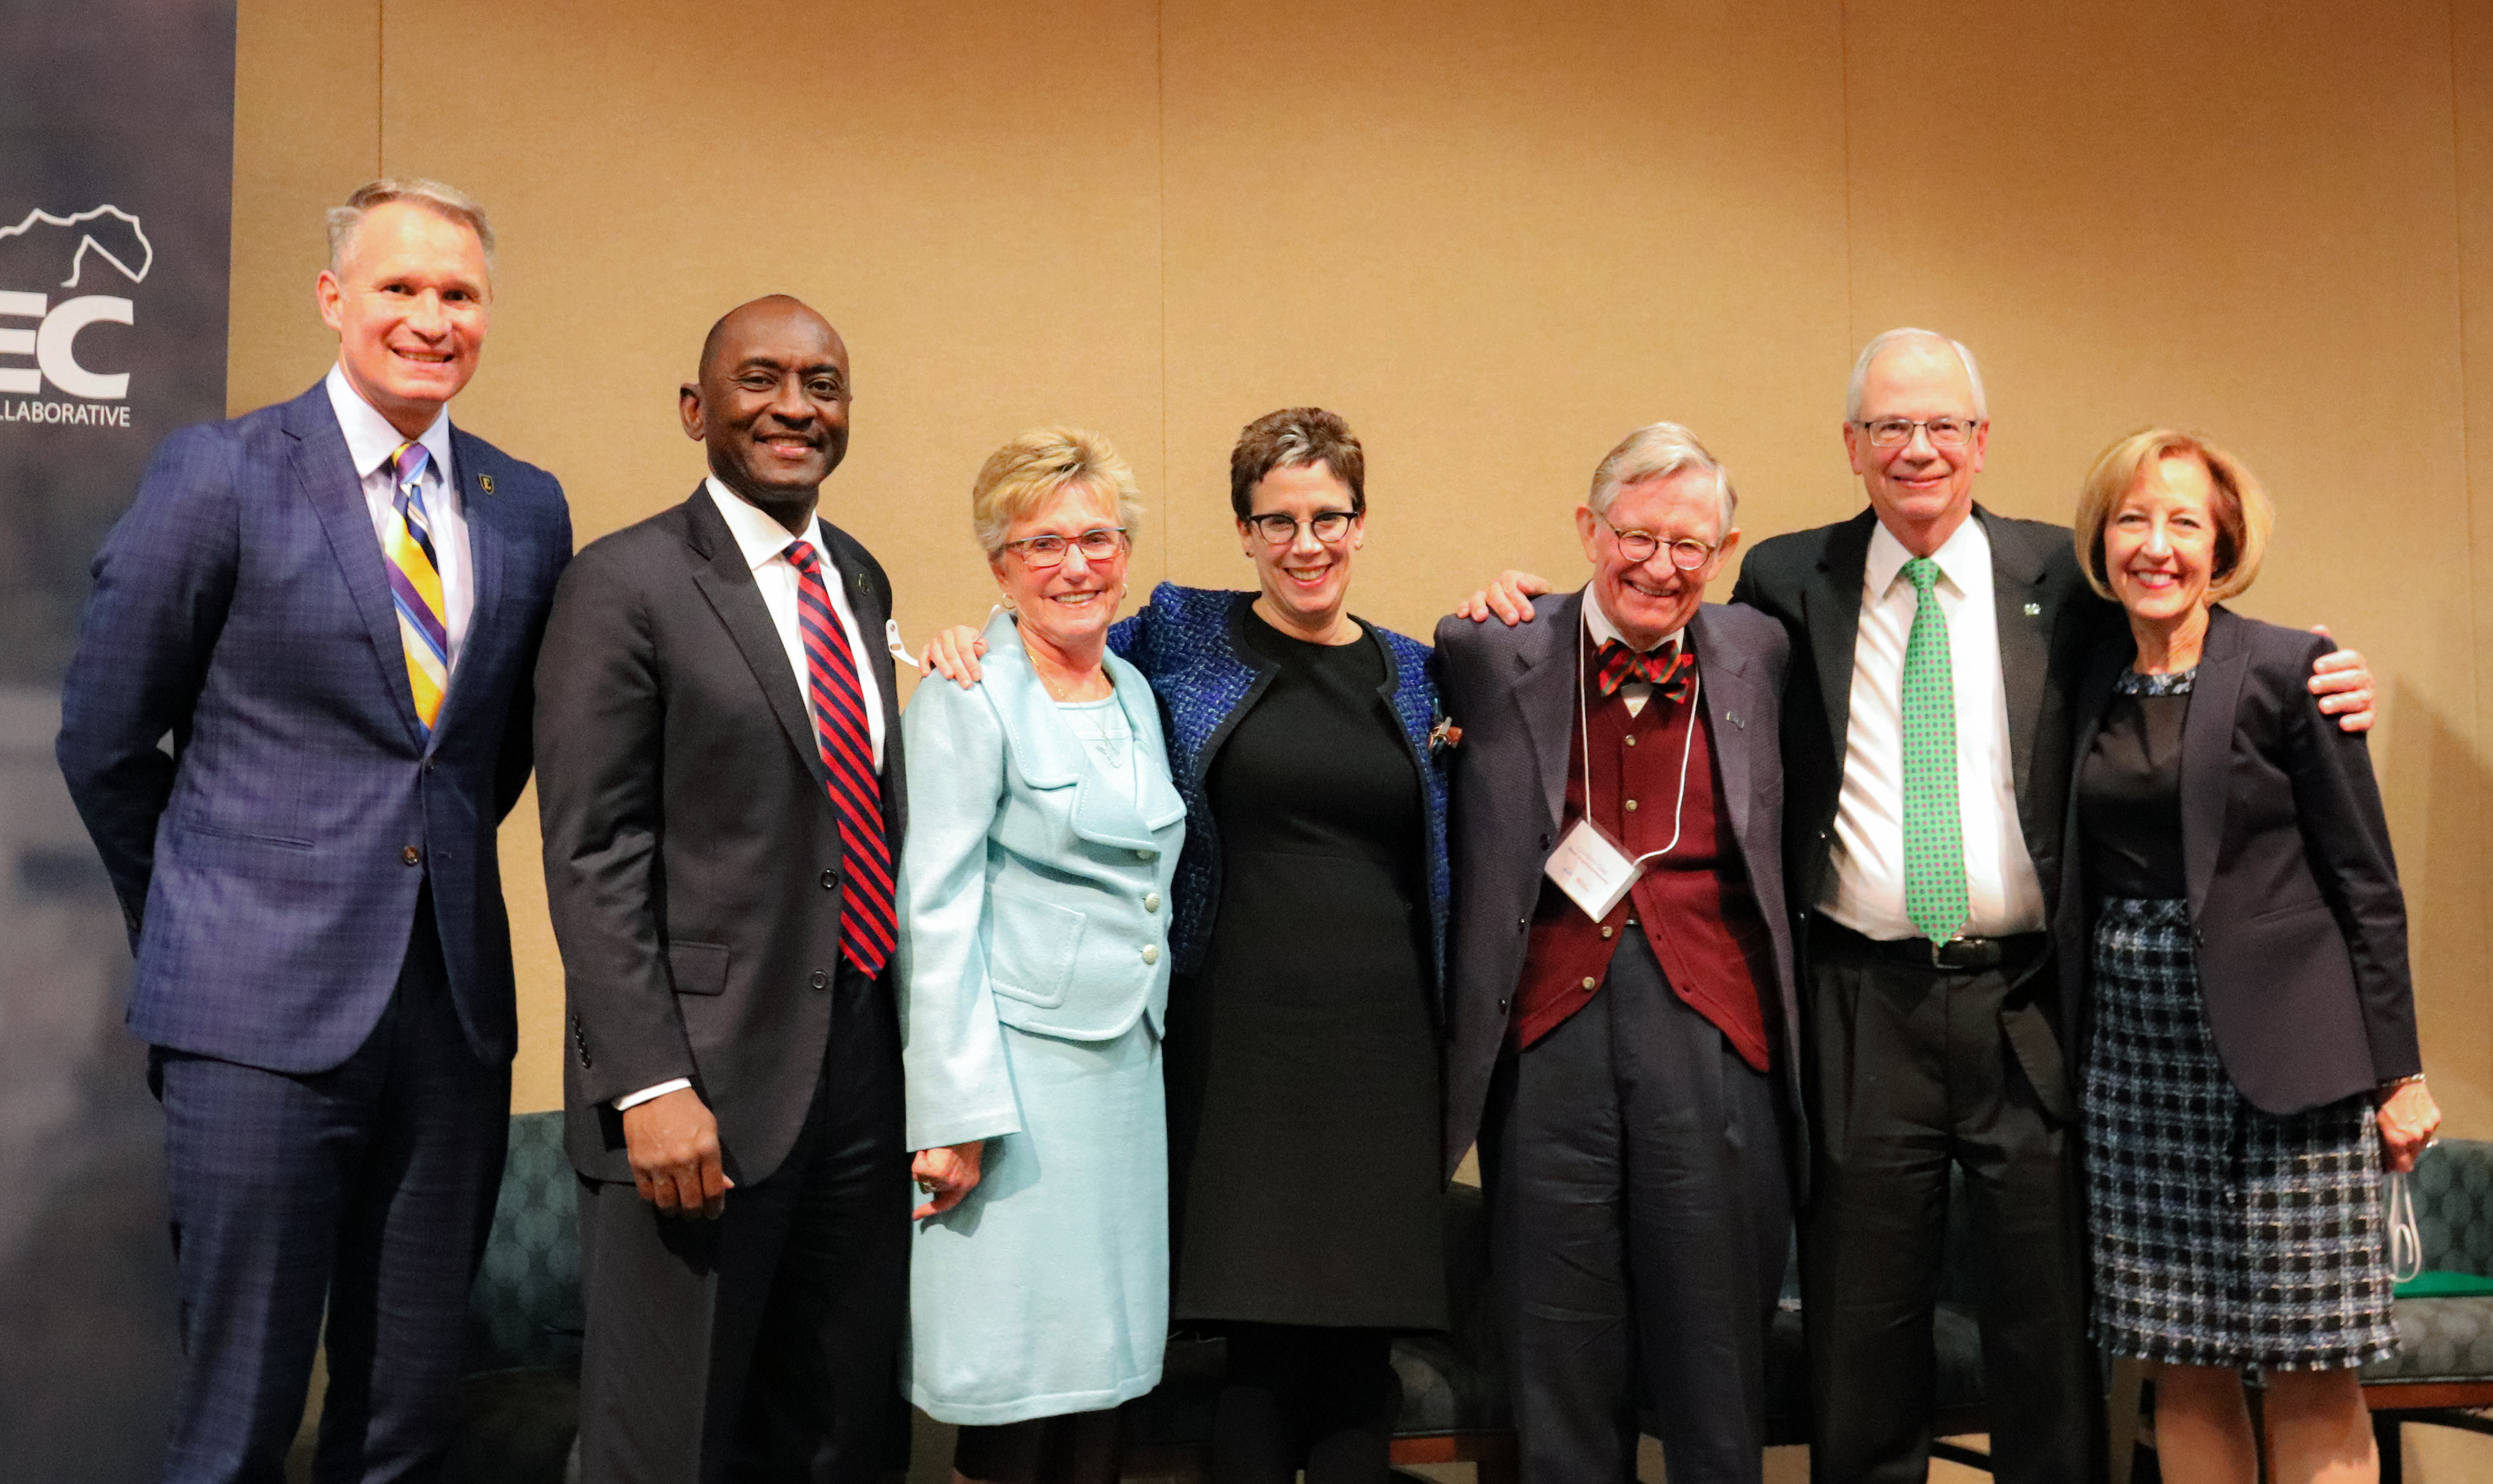 WVPEC members and university and college presidents pose togehter after a panel on the future landscape of higher education in West Virginia